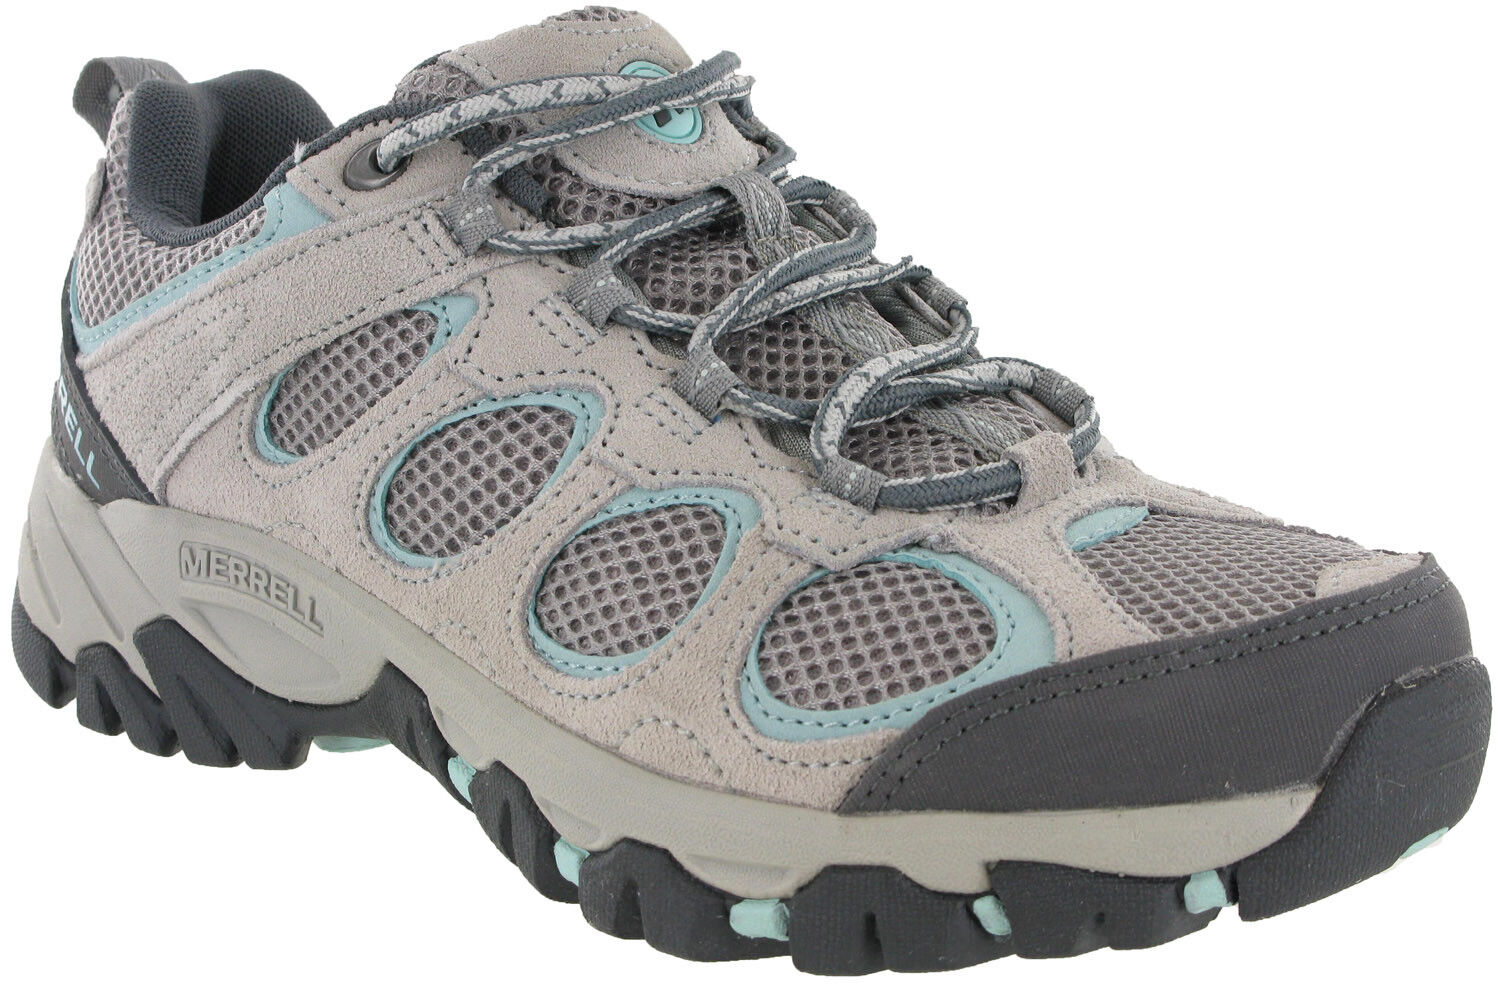 Details about Merrell Hilltop Ventilator Ice Womens Hiking Casual Mesh Sneakers show original title